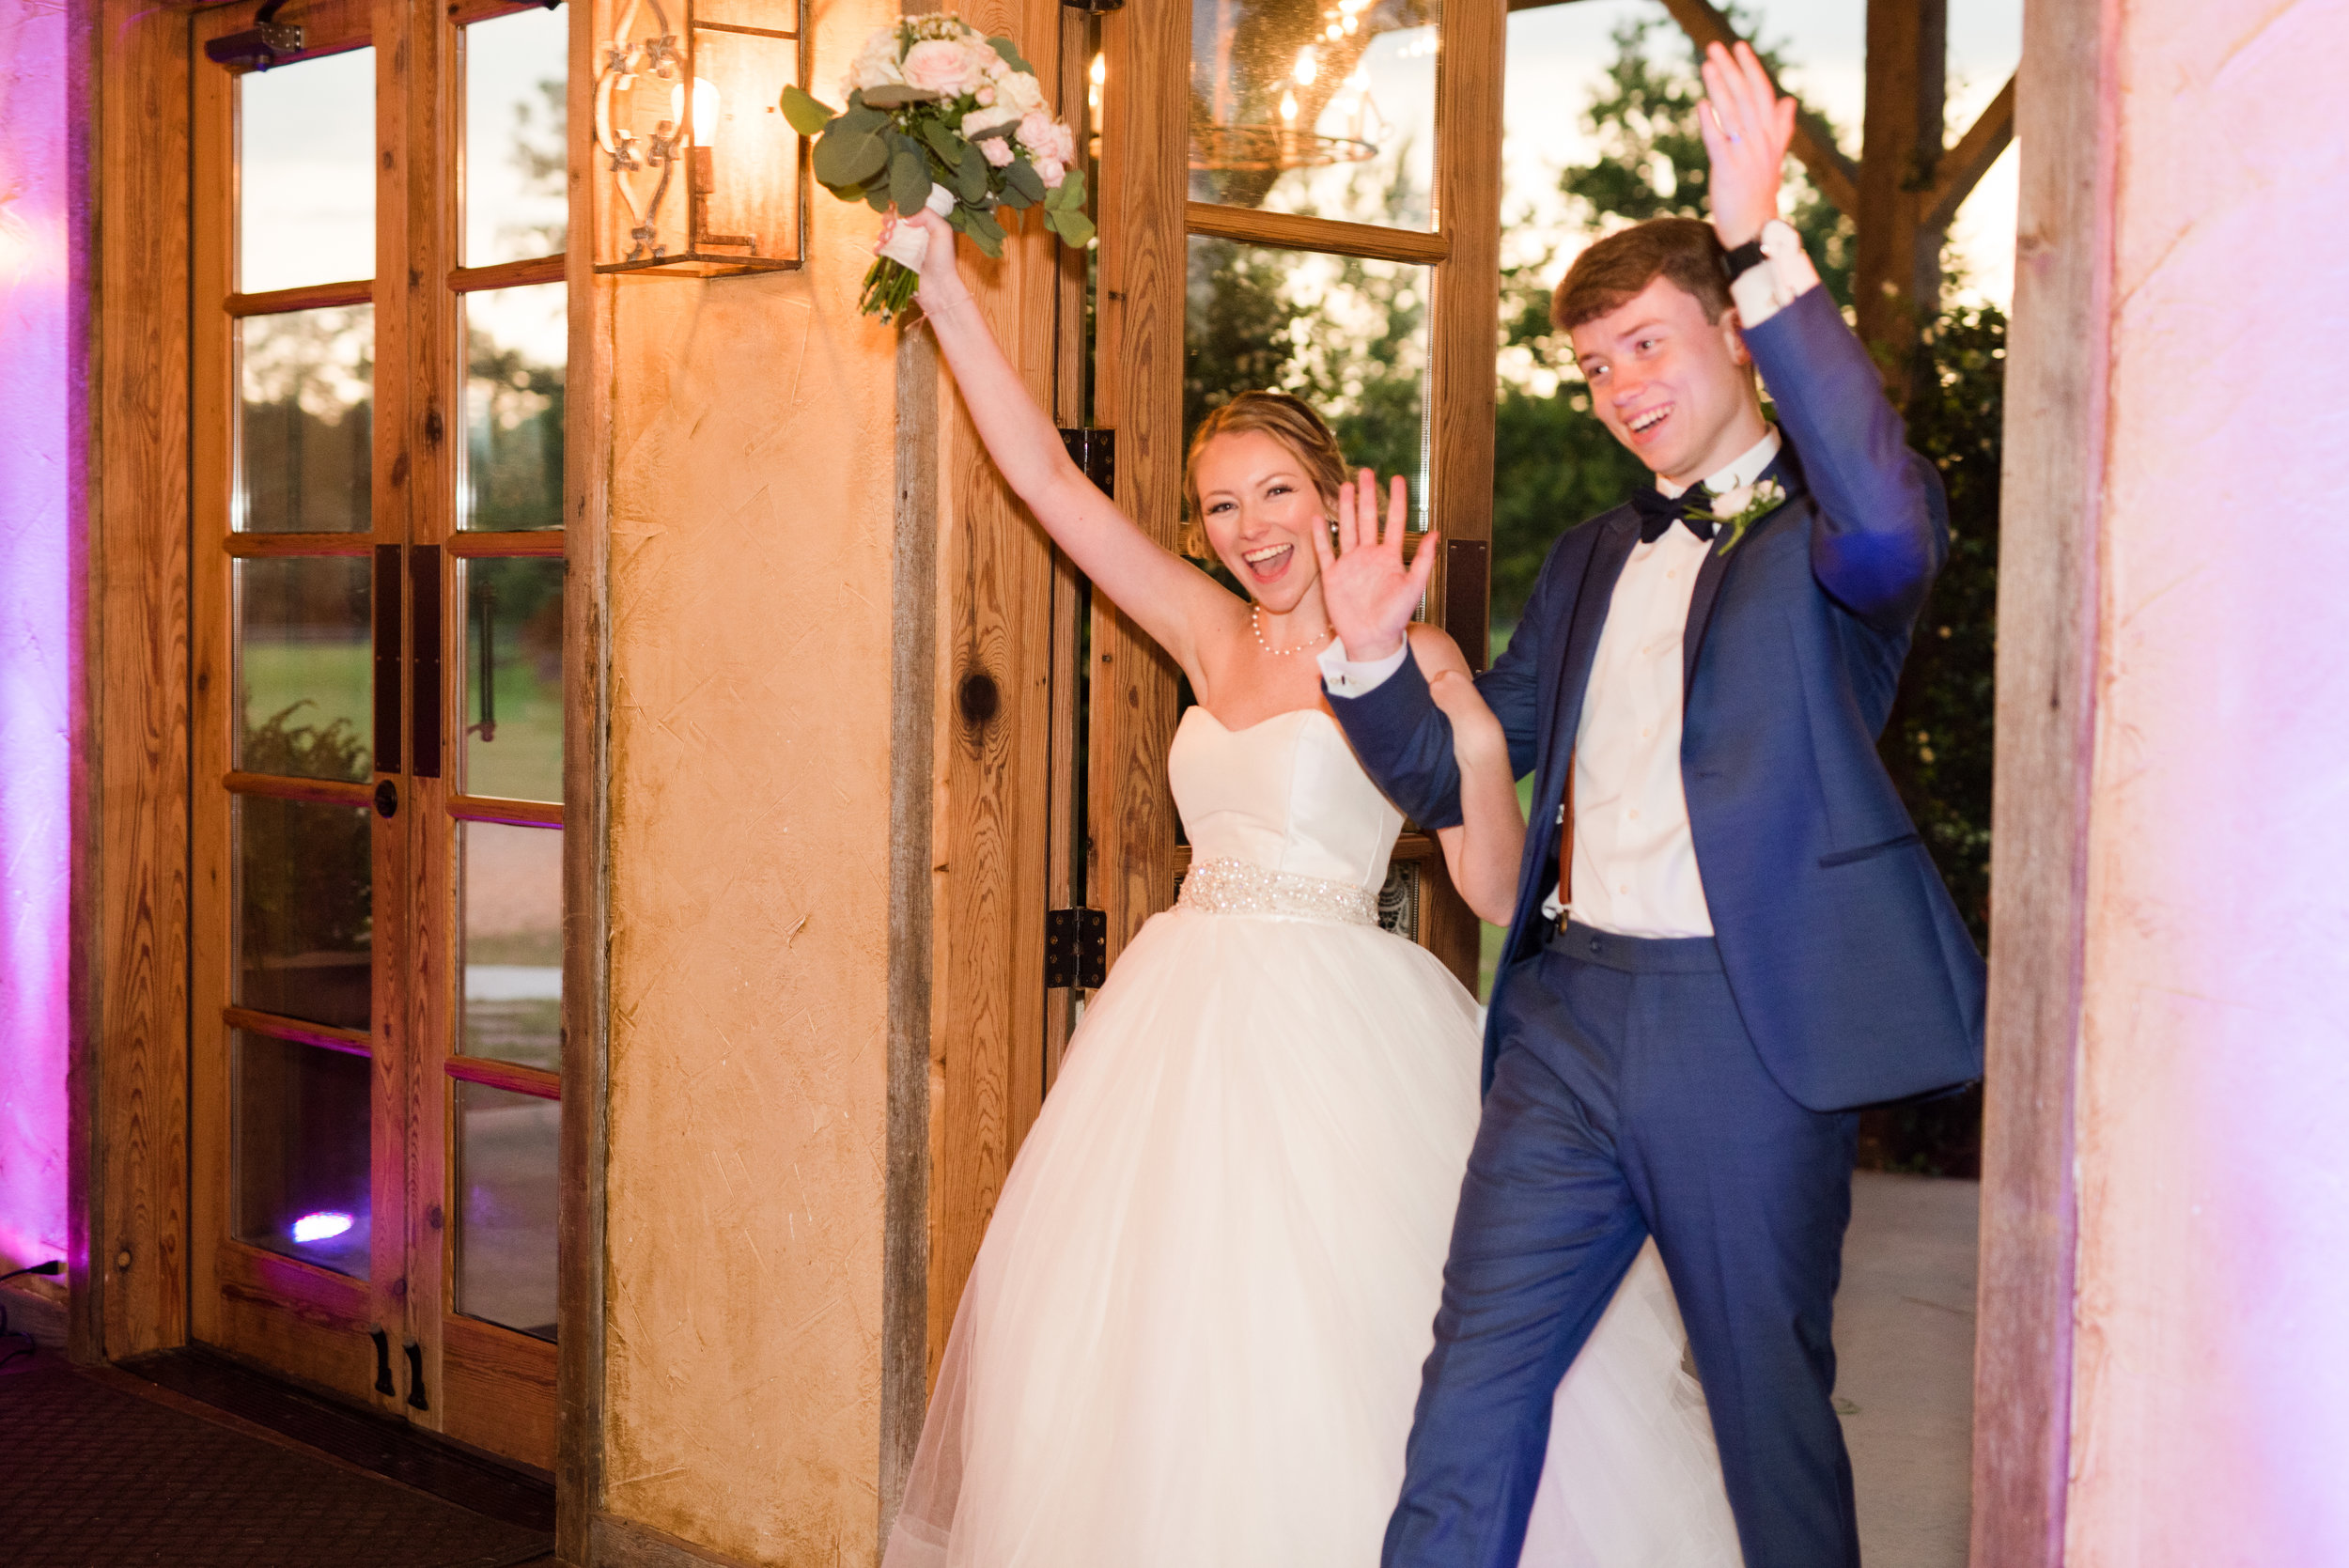 The Barn at Bridlewood wedding in Hattiesburg, Mississippi (MS) in June | Bride and Groom Entering the Wedding